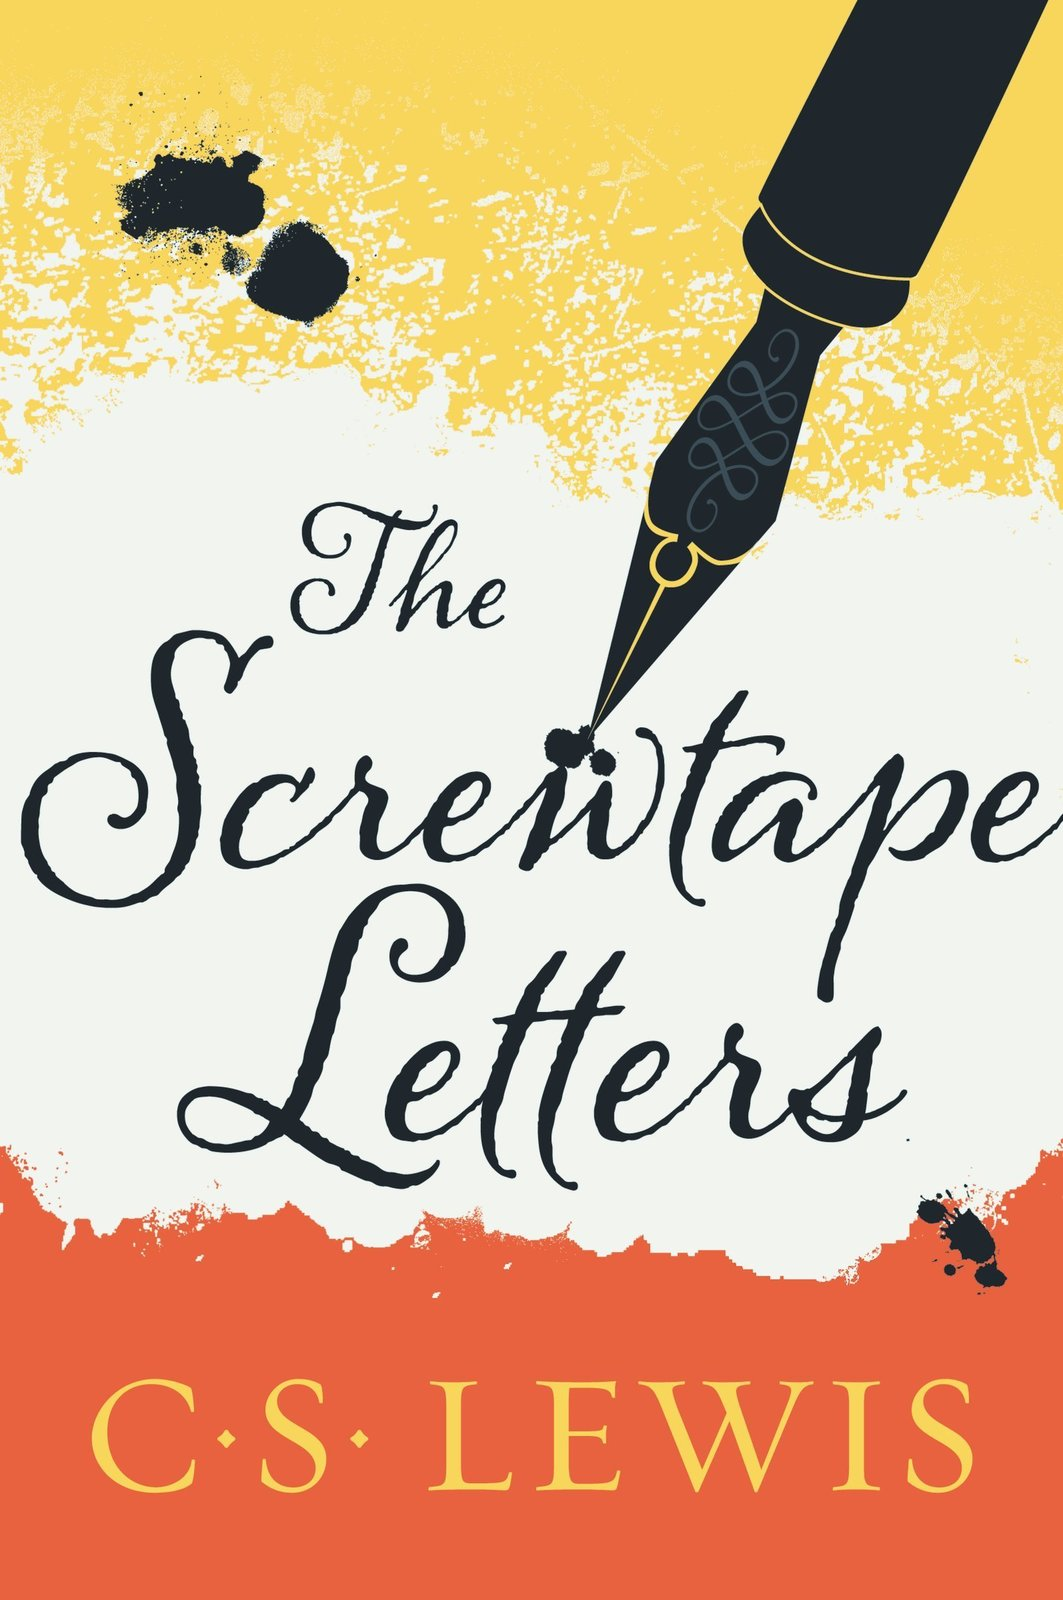 The Screwtape Letters by C.S Lewis image